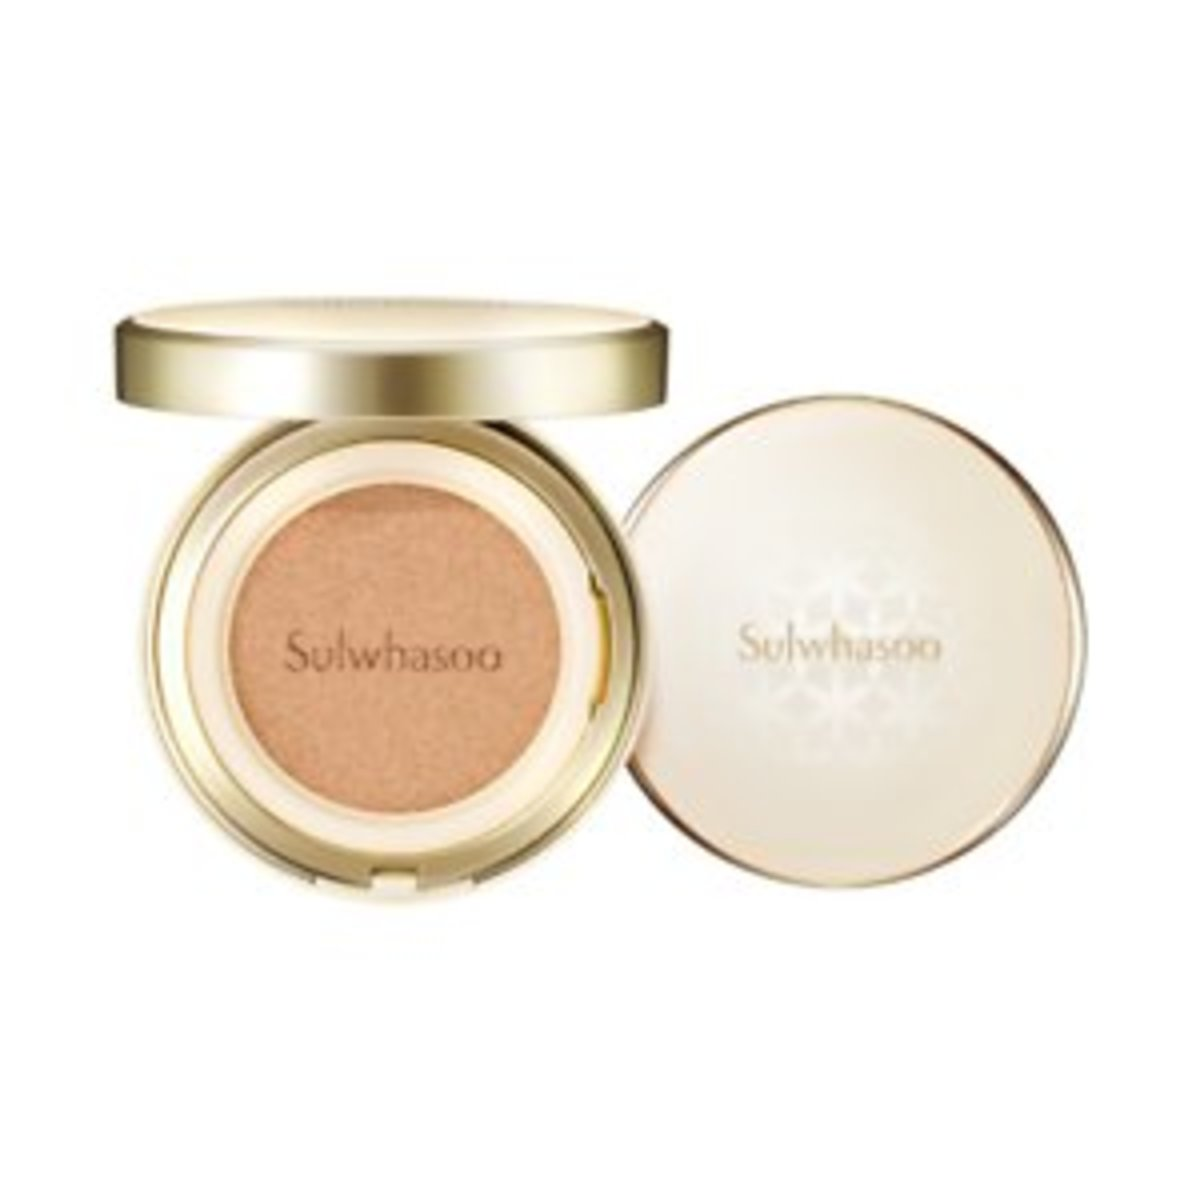 Perfecting Cushion EX SPF50+/ PA+++ #15 Ivory Pink (15g + 15g Refill)